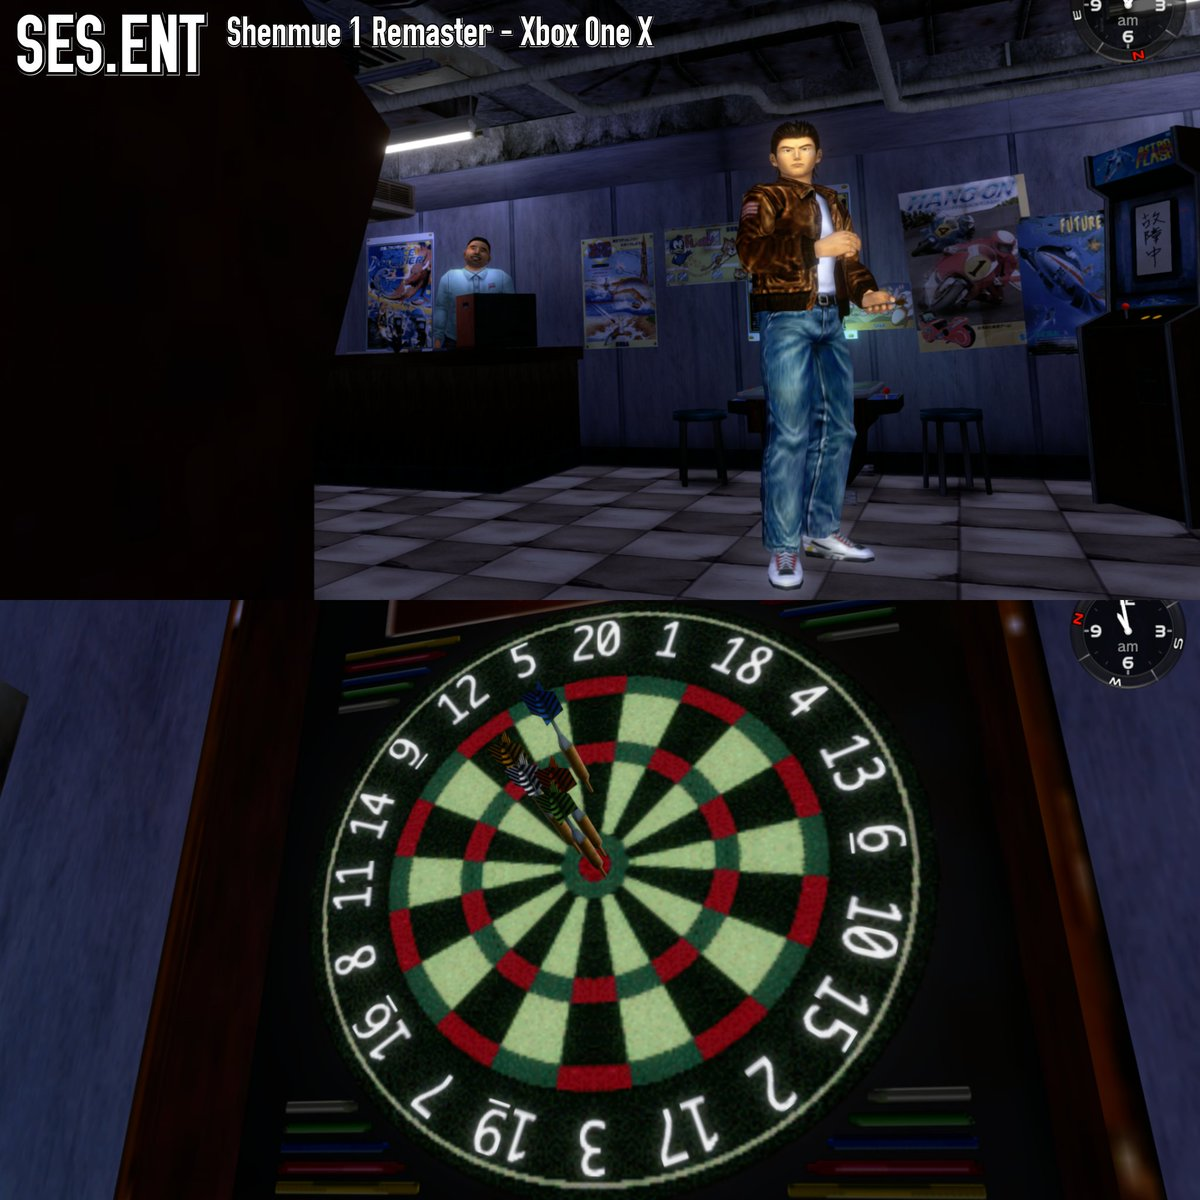 Ses Entertainment On Twitter Darts In Shenmue1 Remastered For